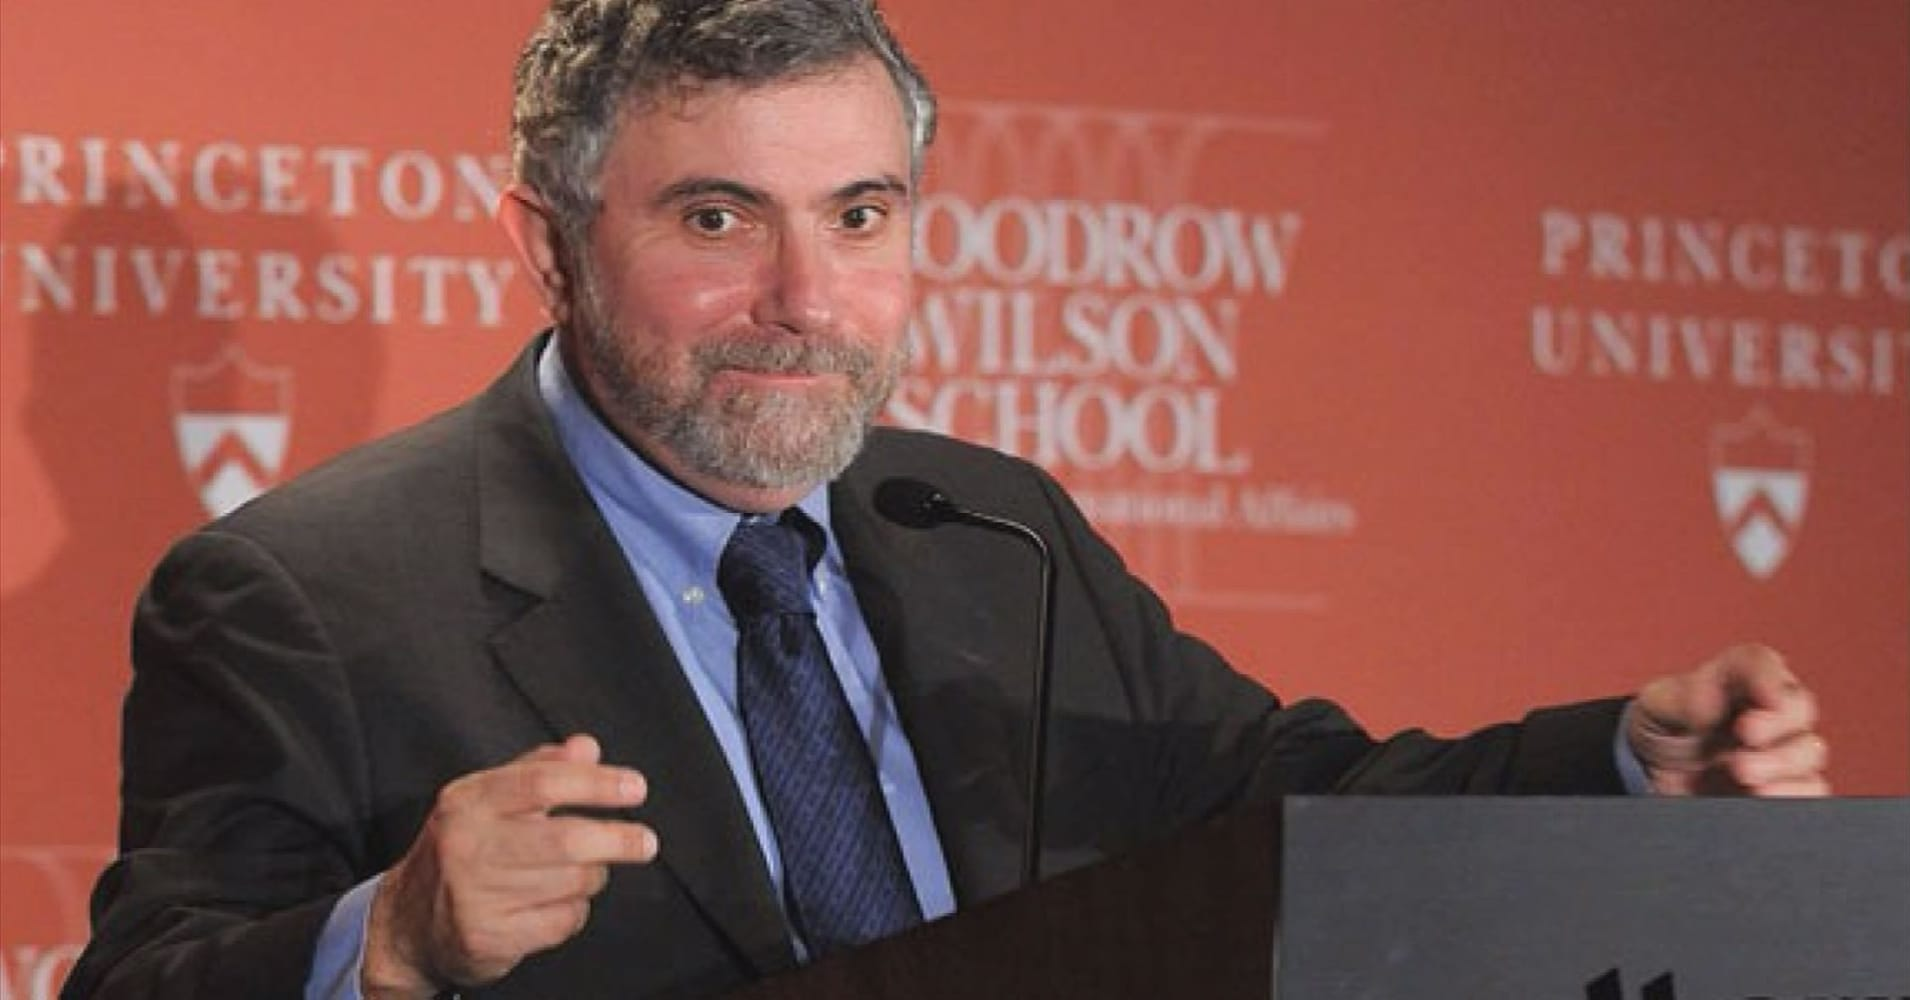 Paul Krugman expects a global recession this year, warns 'we don't have an effective response'